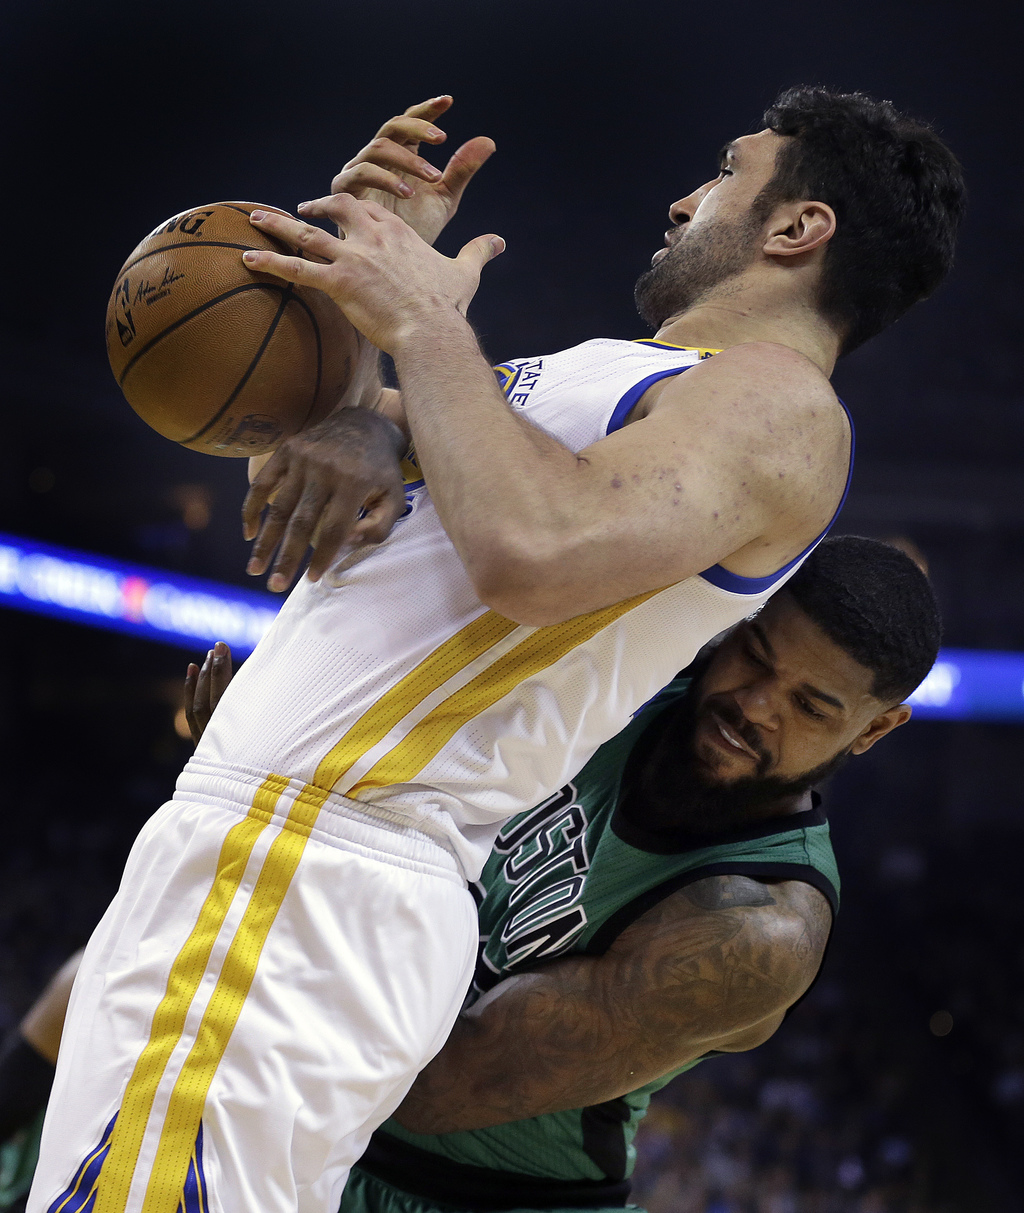 Golden State Warriors' Zaza Pachulia, left, and Boston Celtics' Amir Johnson compete for the ball during the first half of an NBA baske...